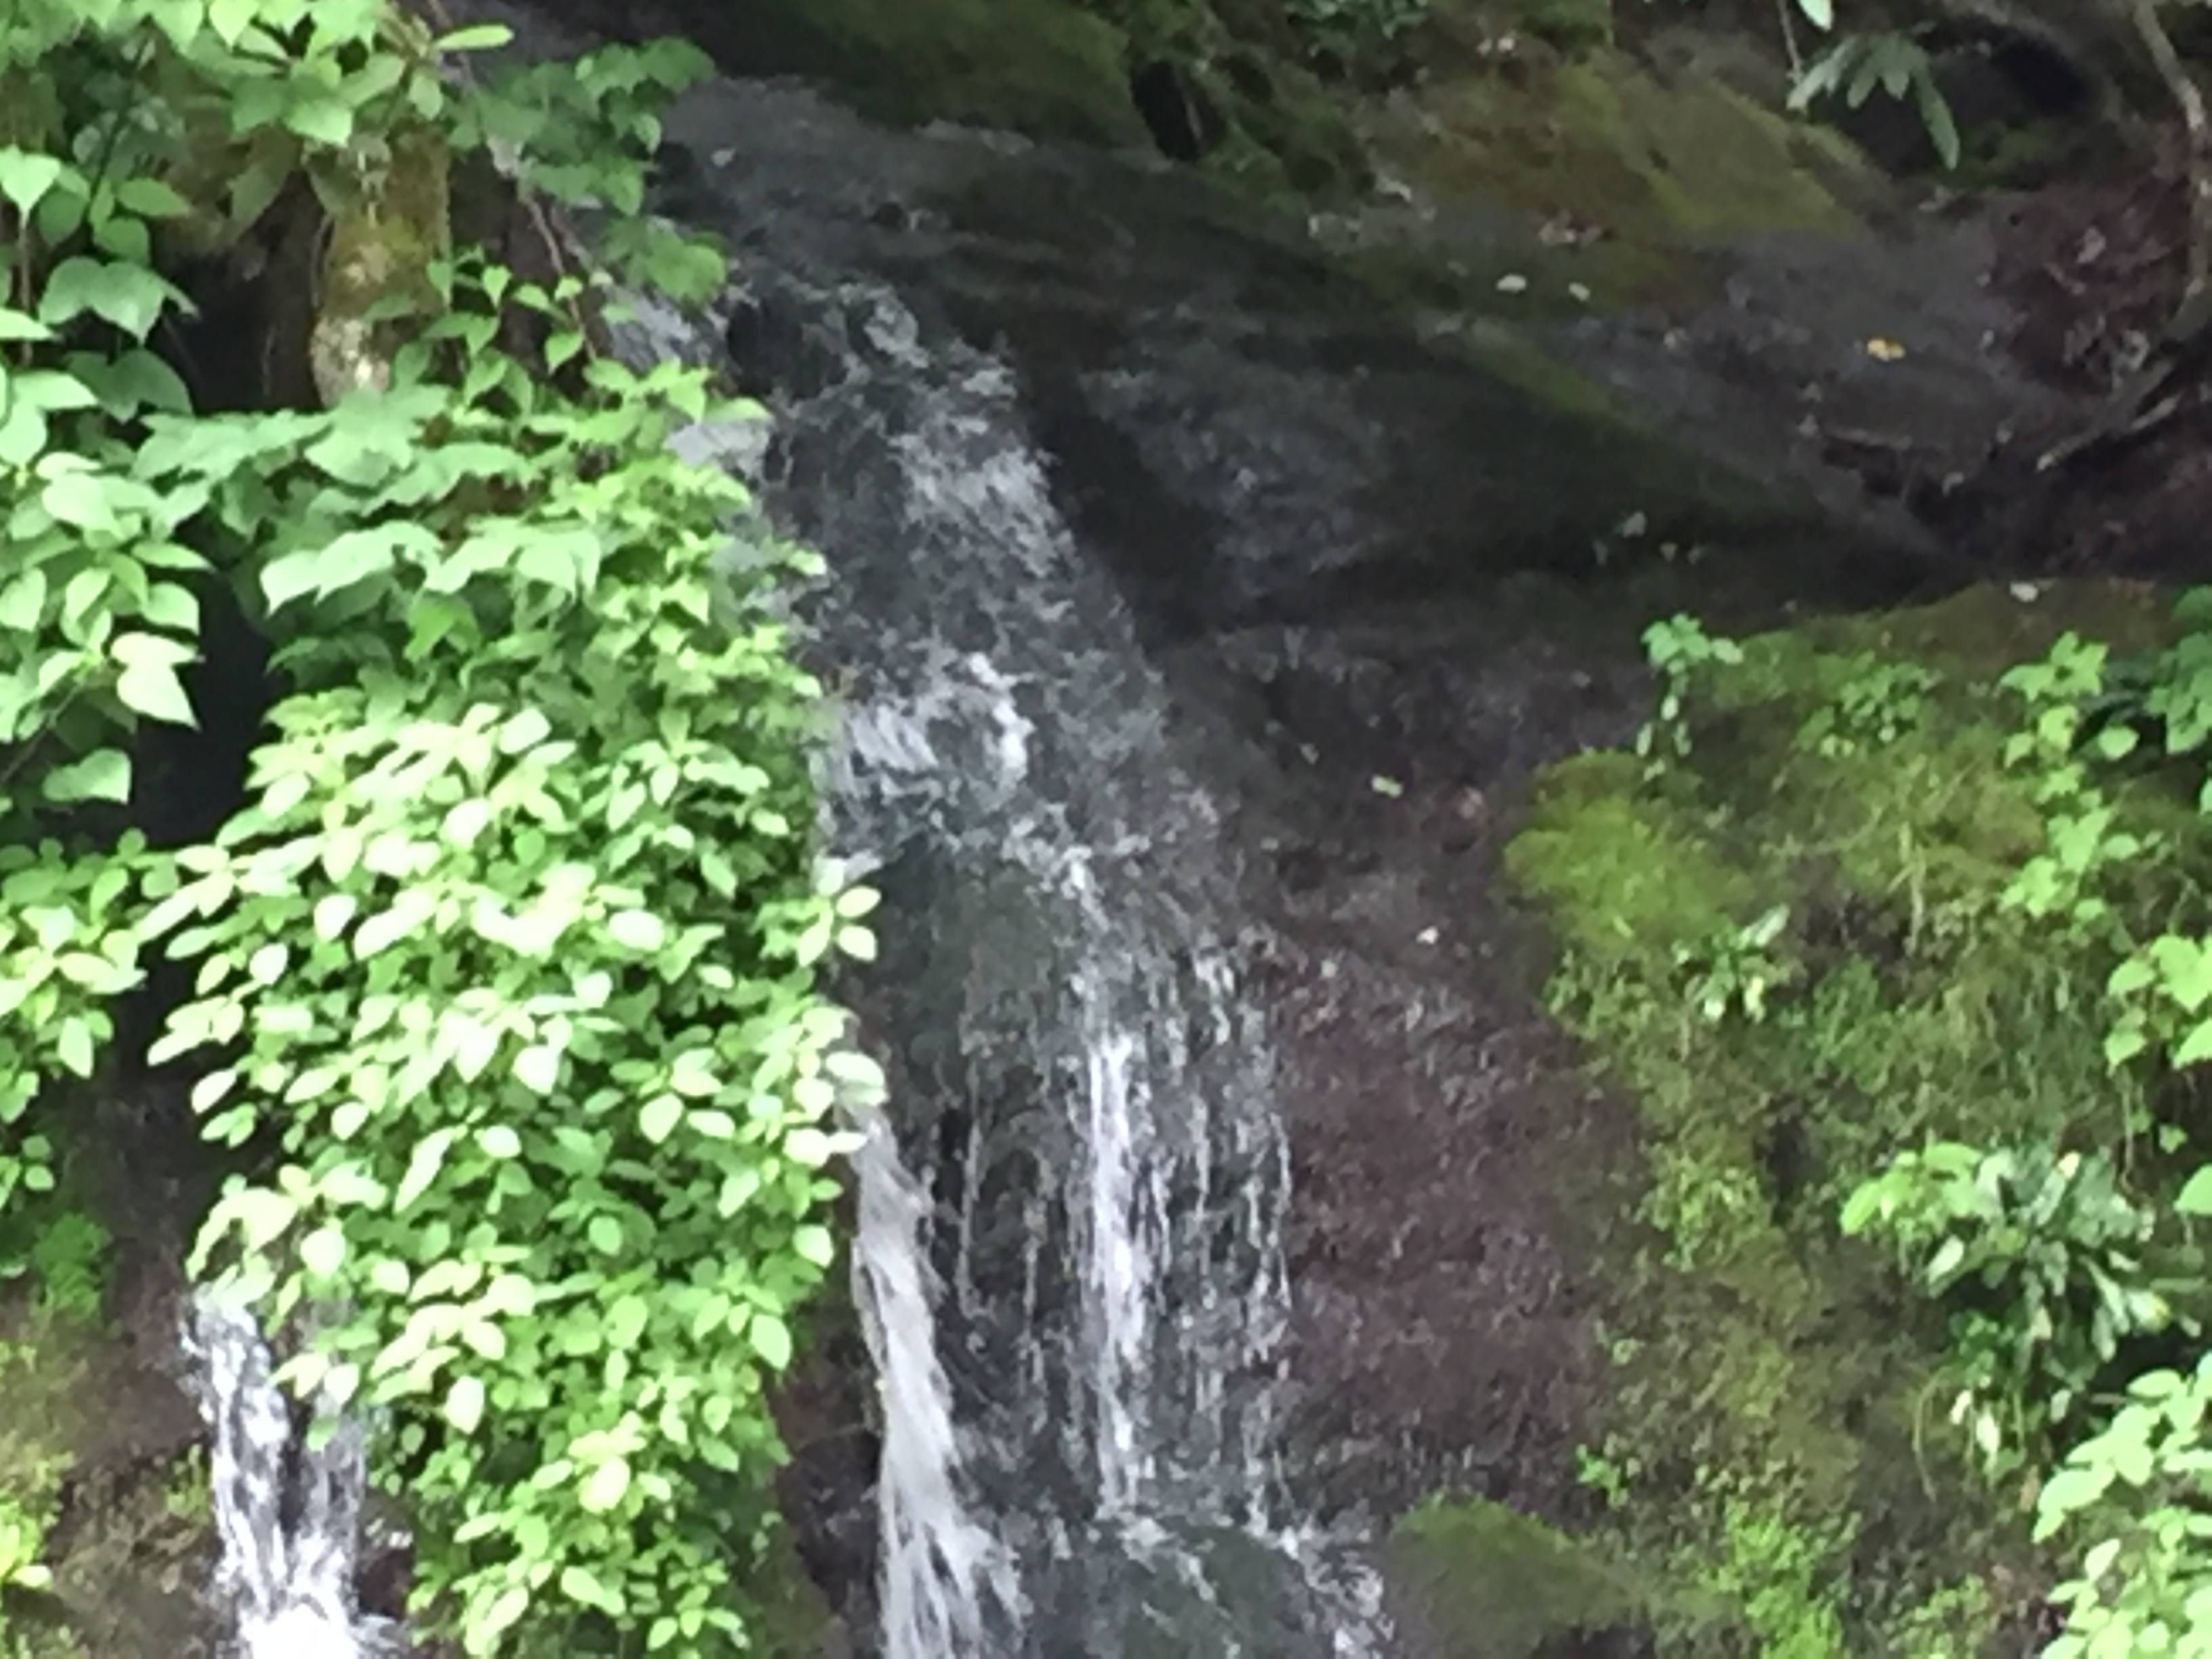 Cataract Falls at the Great Smoky Mountains National Park.  Photo taken by and the property of FourWalls.